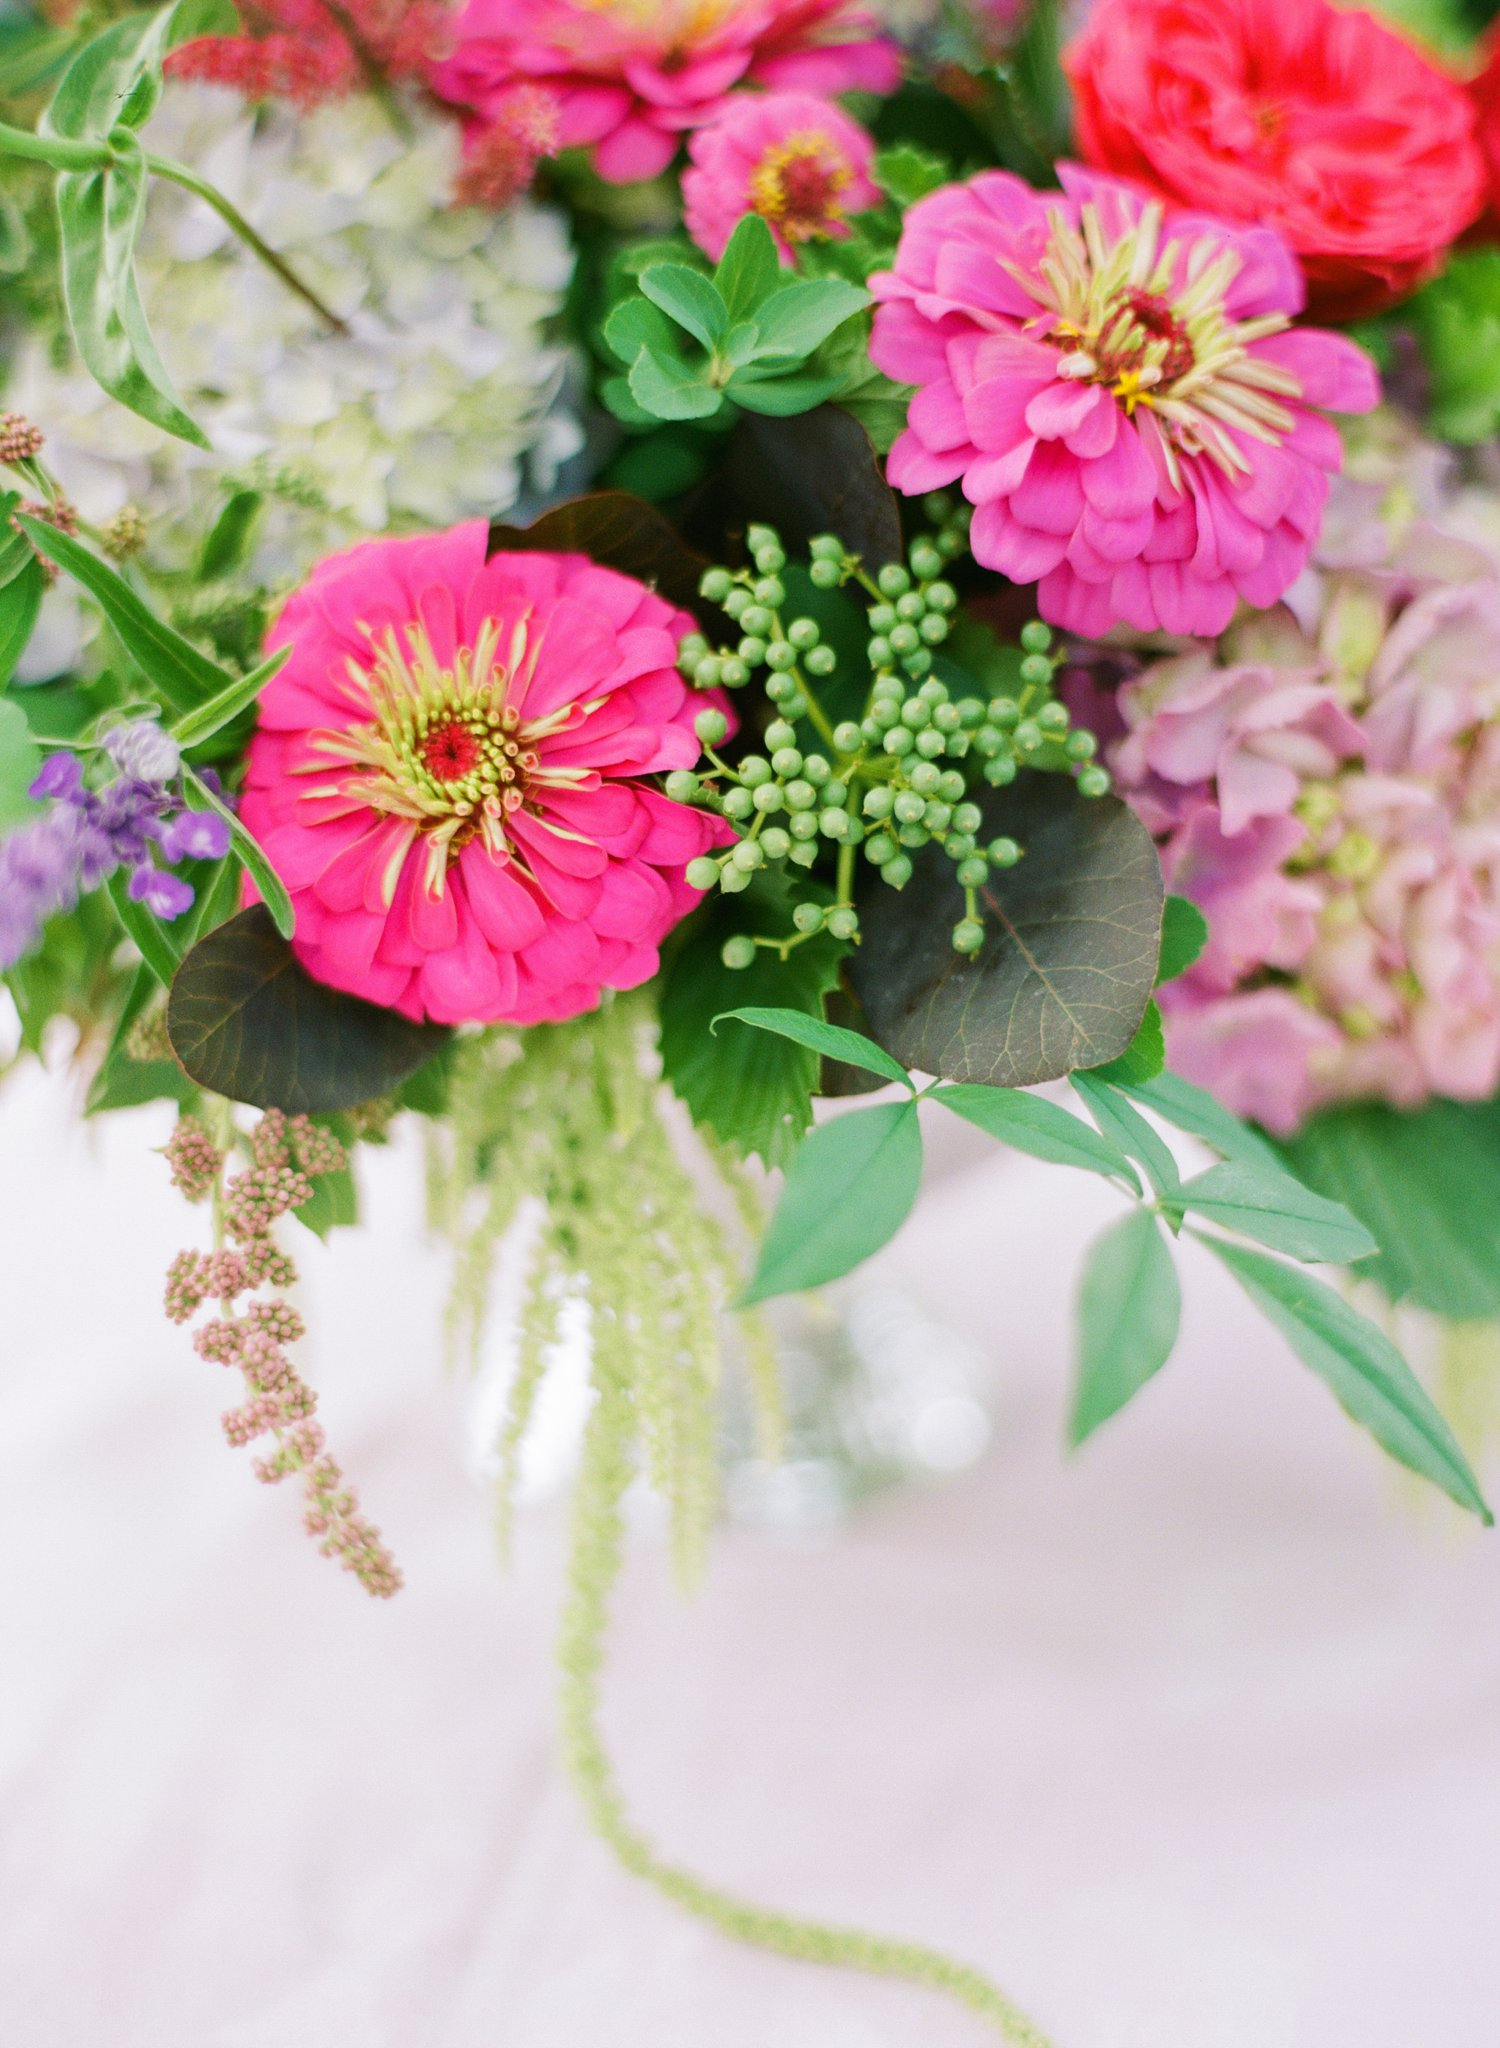 Floral arrangement with Zinnia